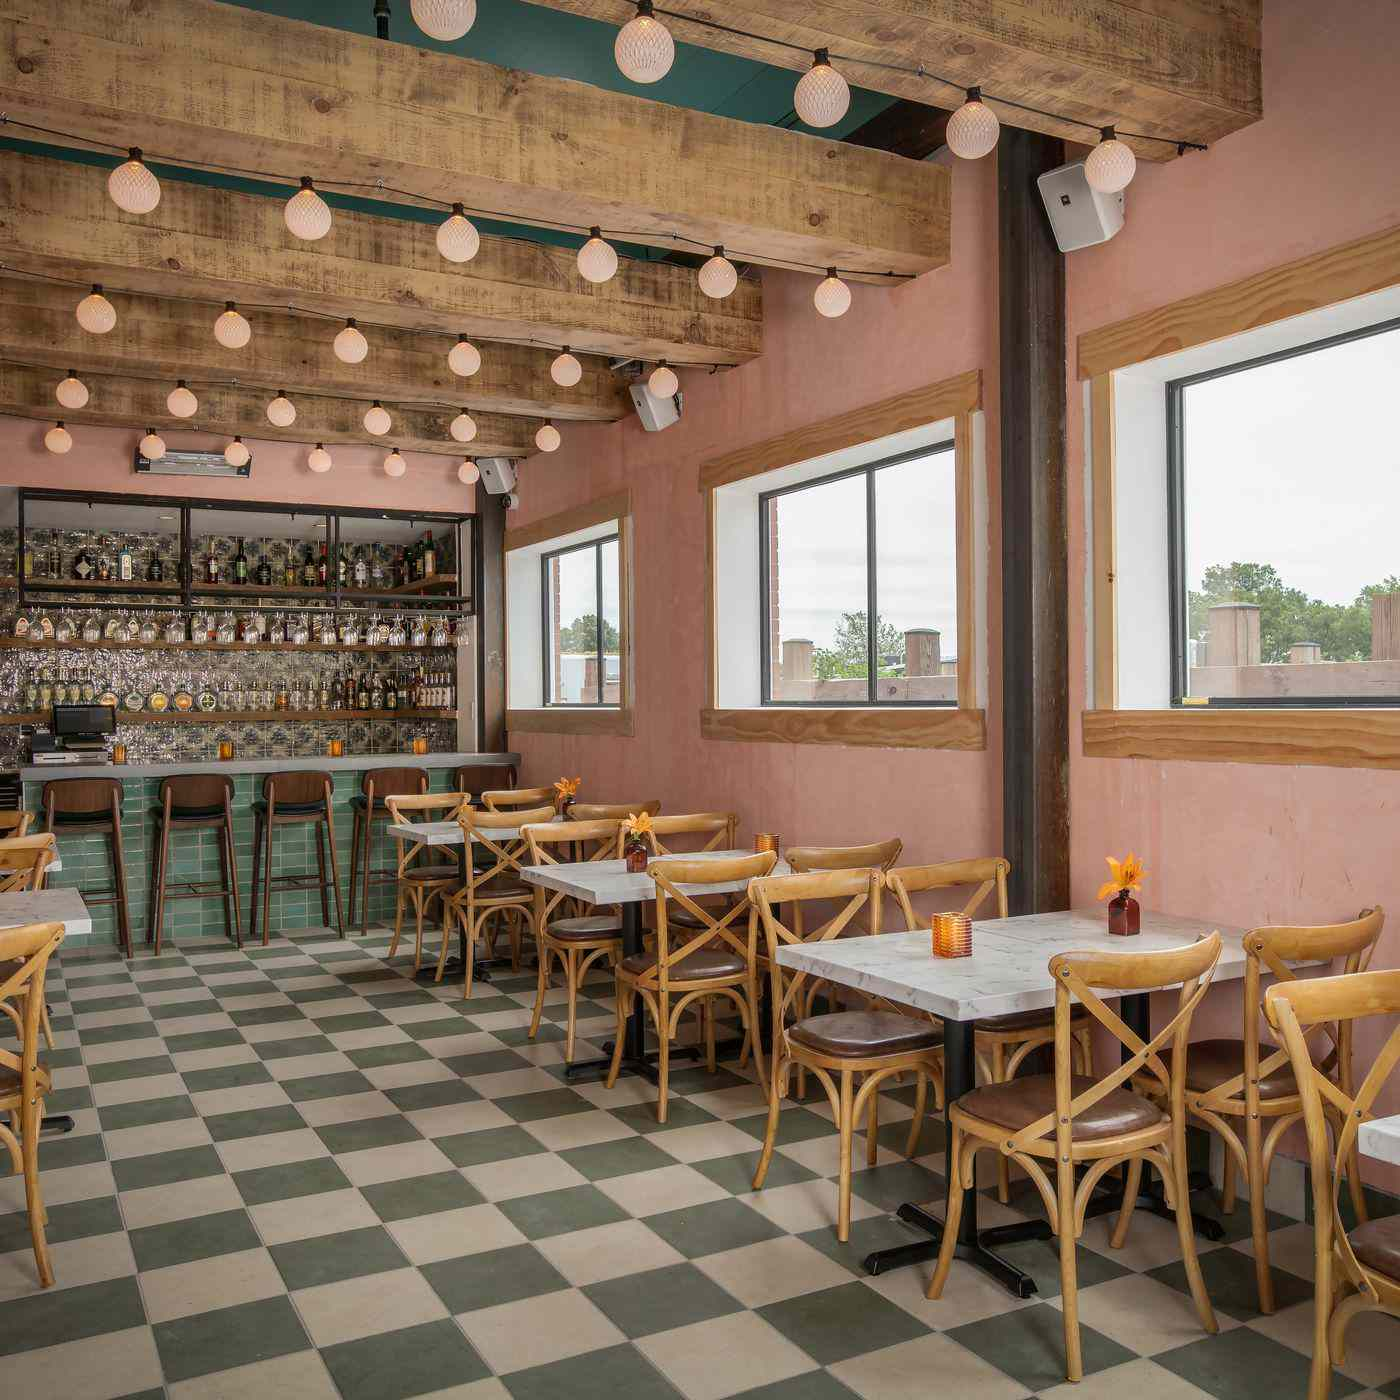 pink and green accented dining room at Ambar restaurant